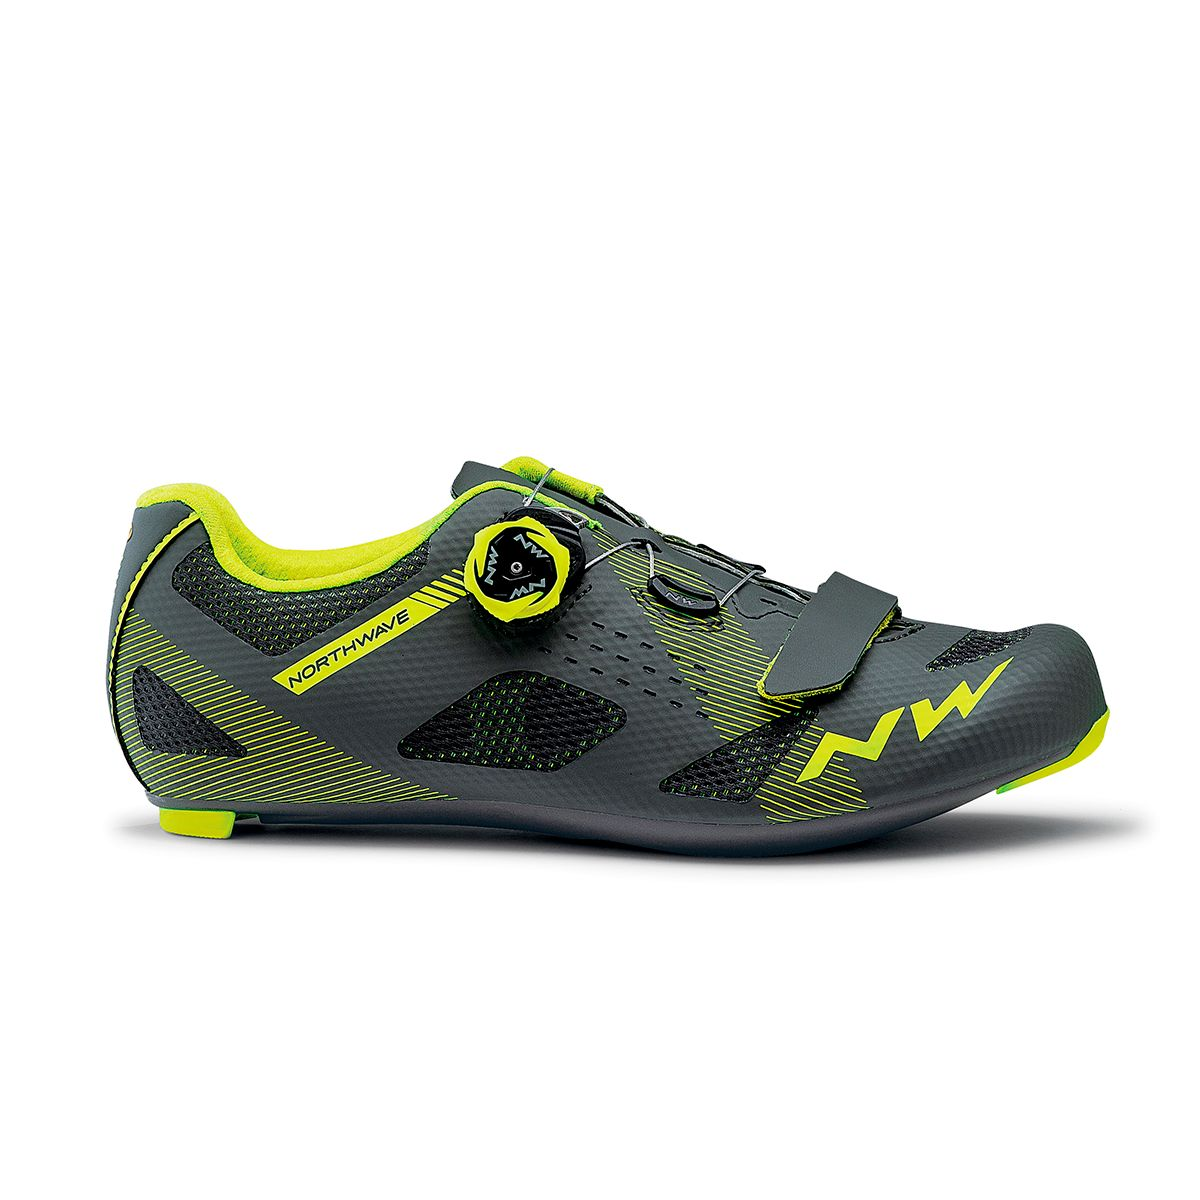 STORM road bike shoes